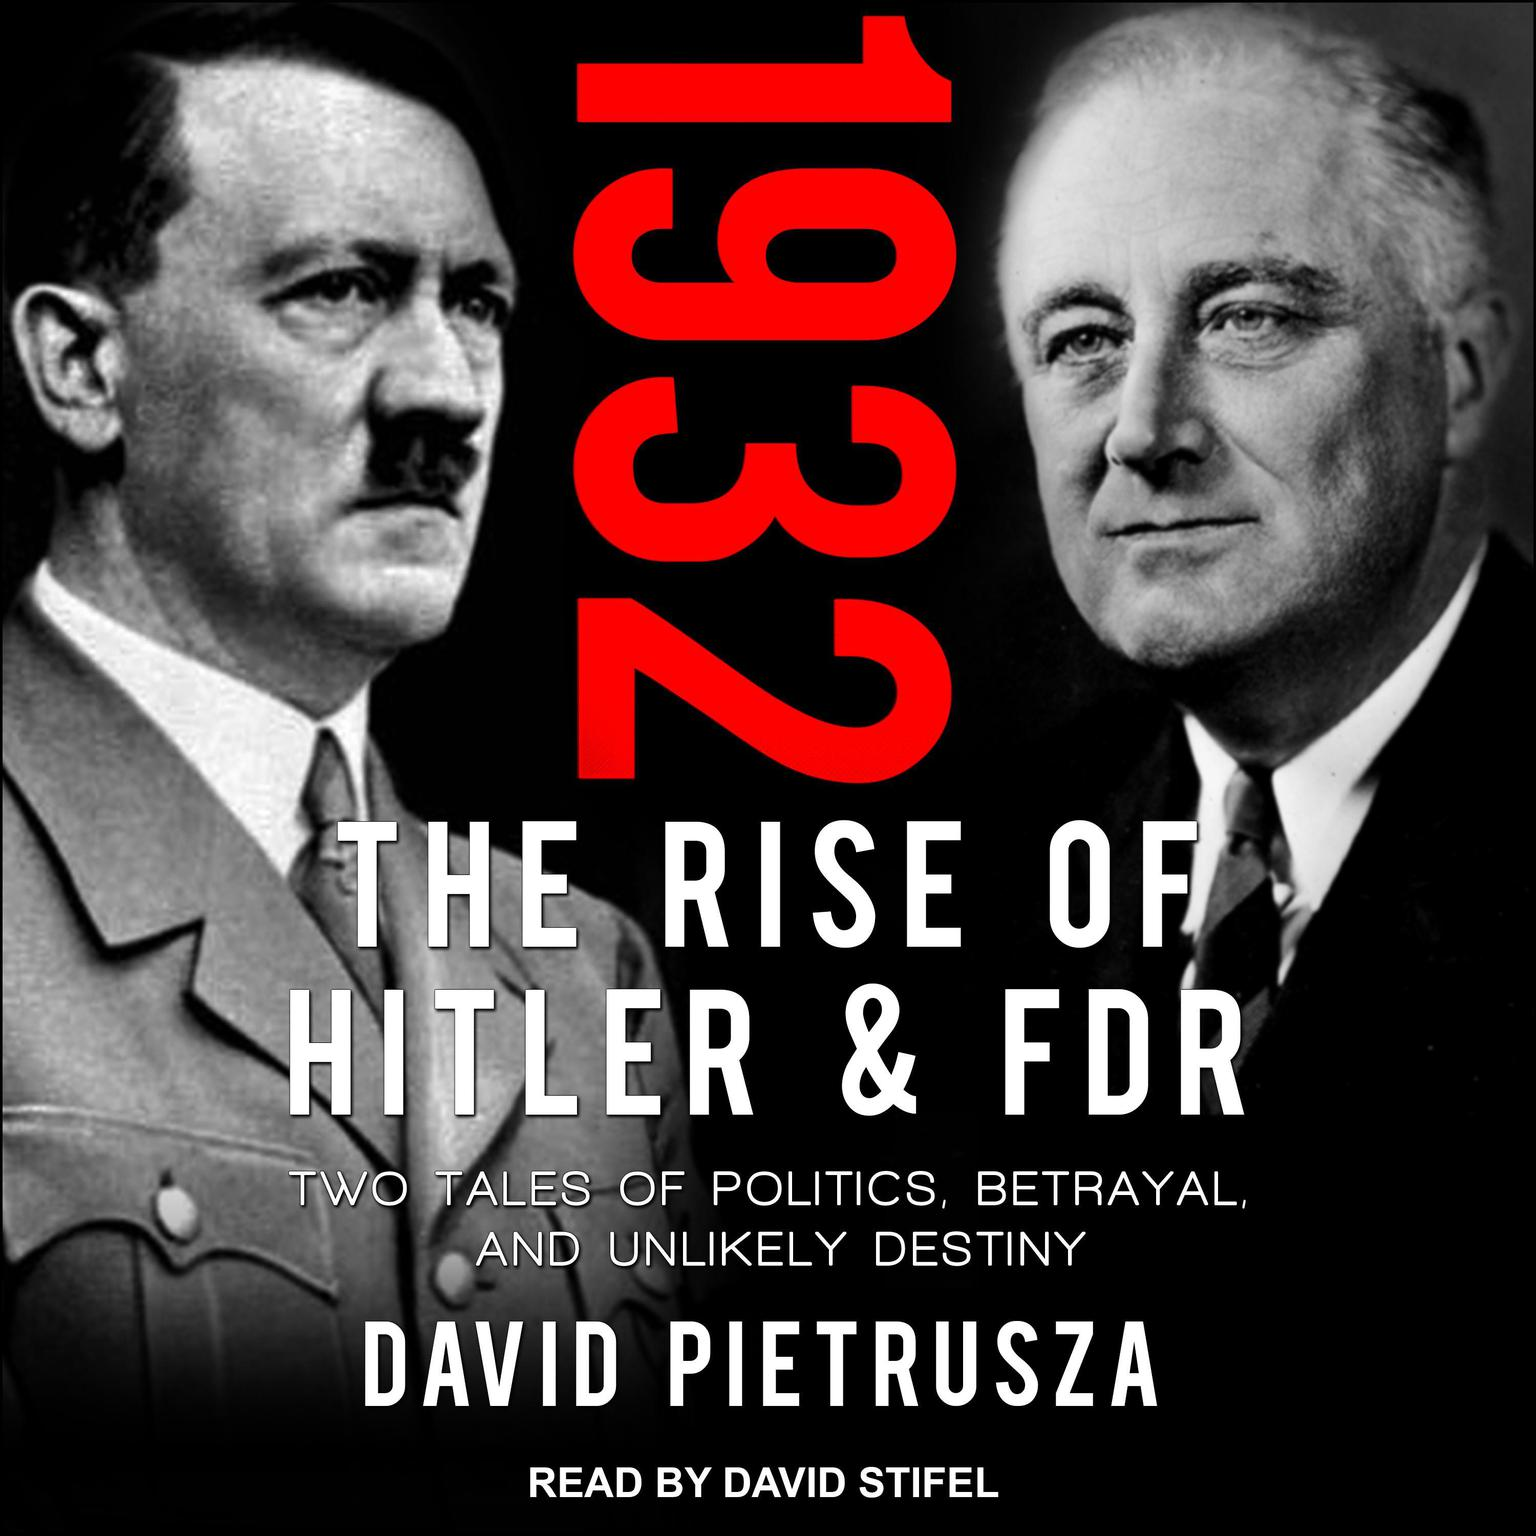 Printable 1932: The Rise of Hitler and FDR-Two Tales of Politics, Betrayal, and Unlikely Destiny Audiobook Cover Art